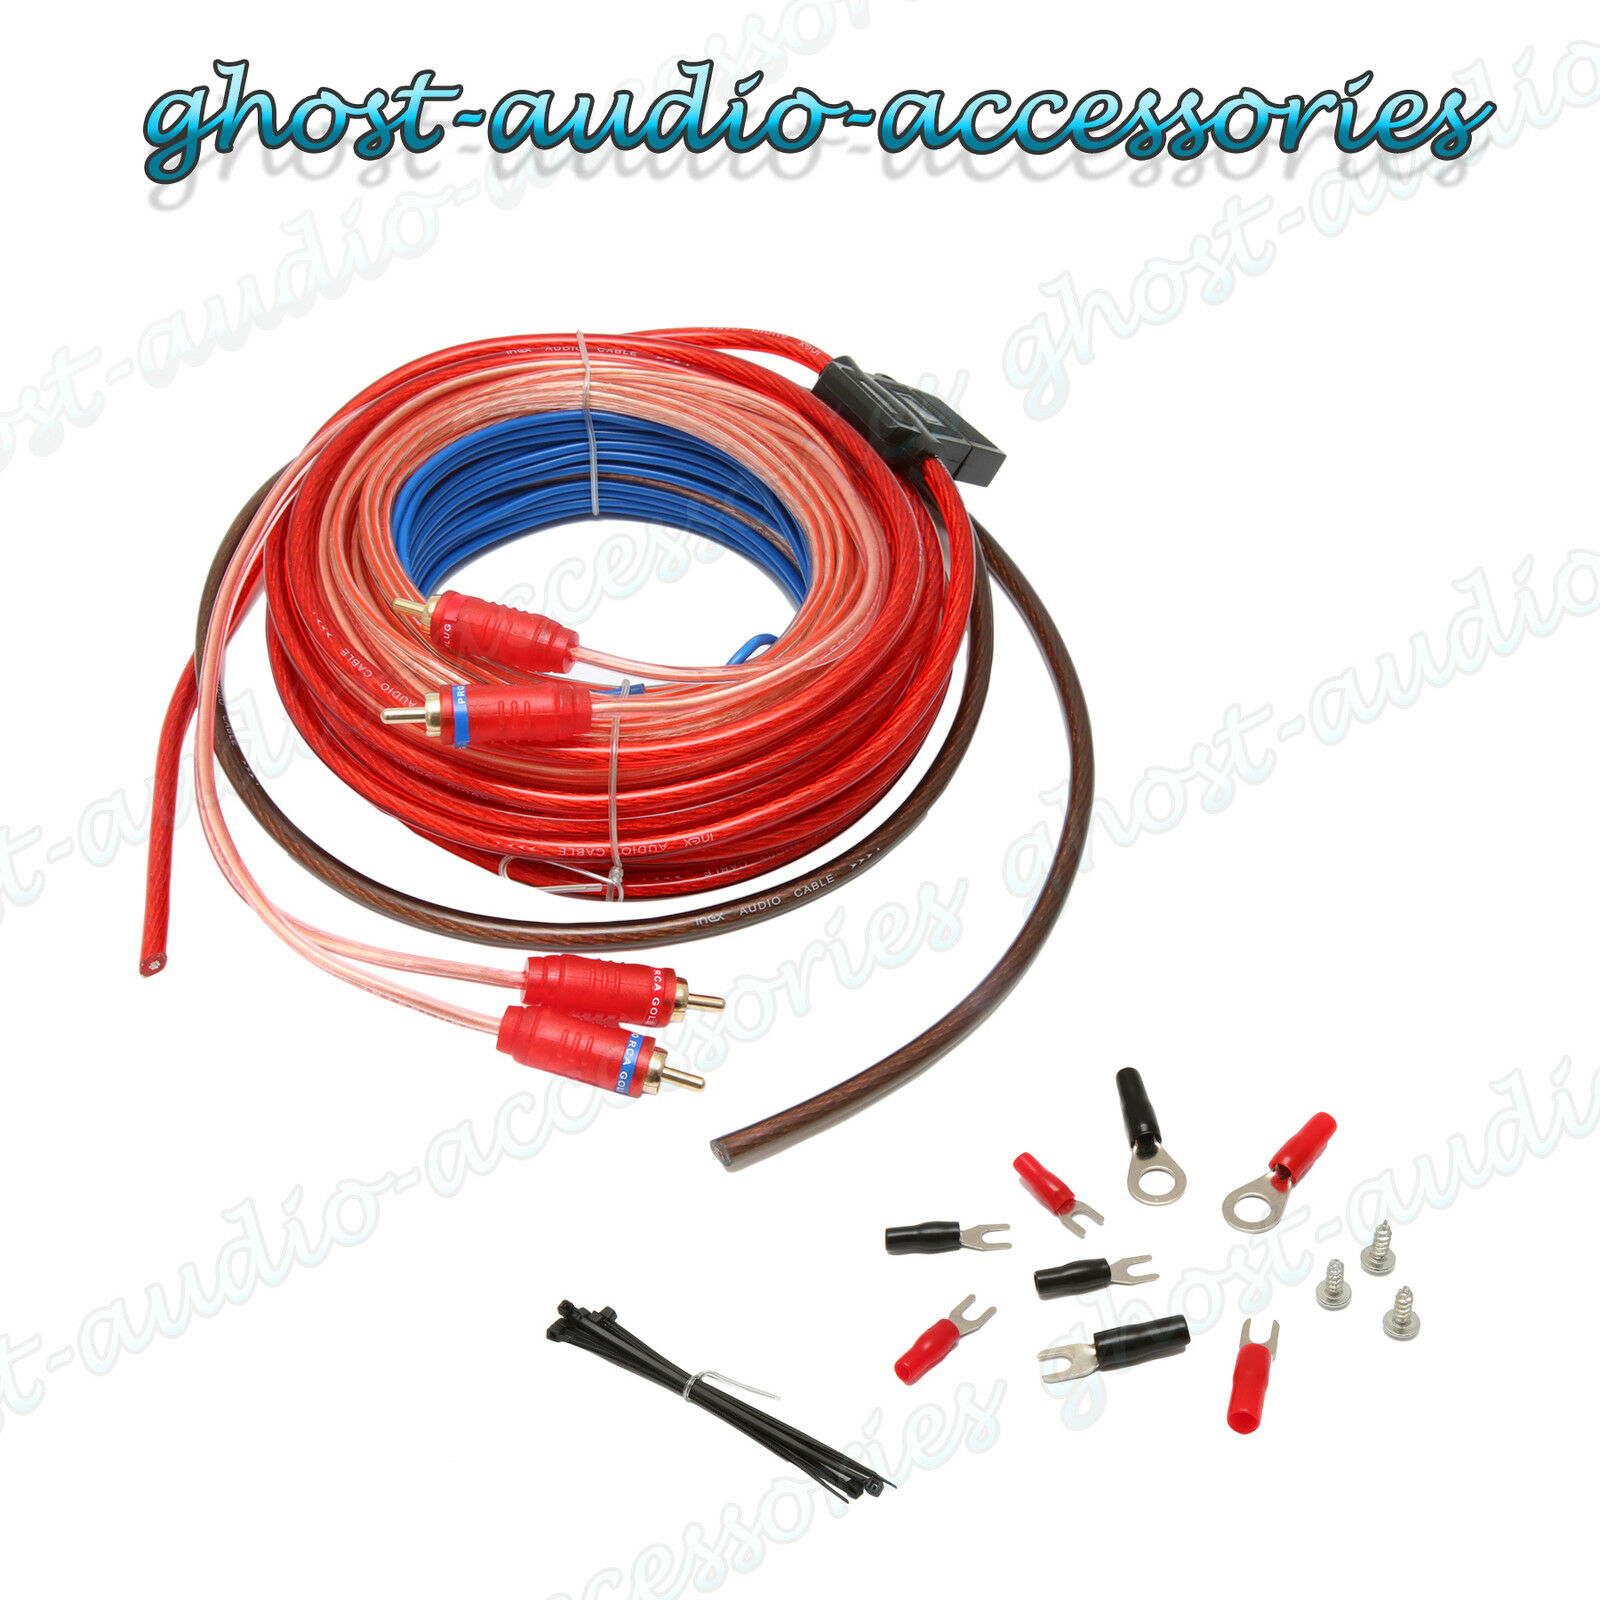 Jl Audio Subwoofer Amp Wiring Library 10 Awg Gauge Amplifier Kit For Edge Vibe Car